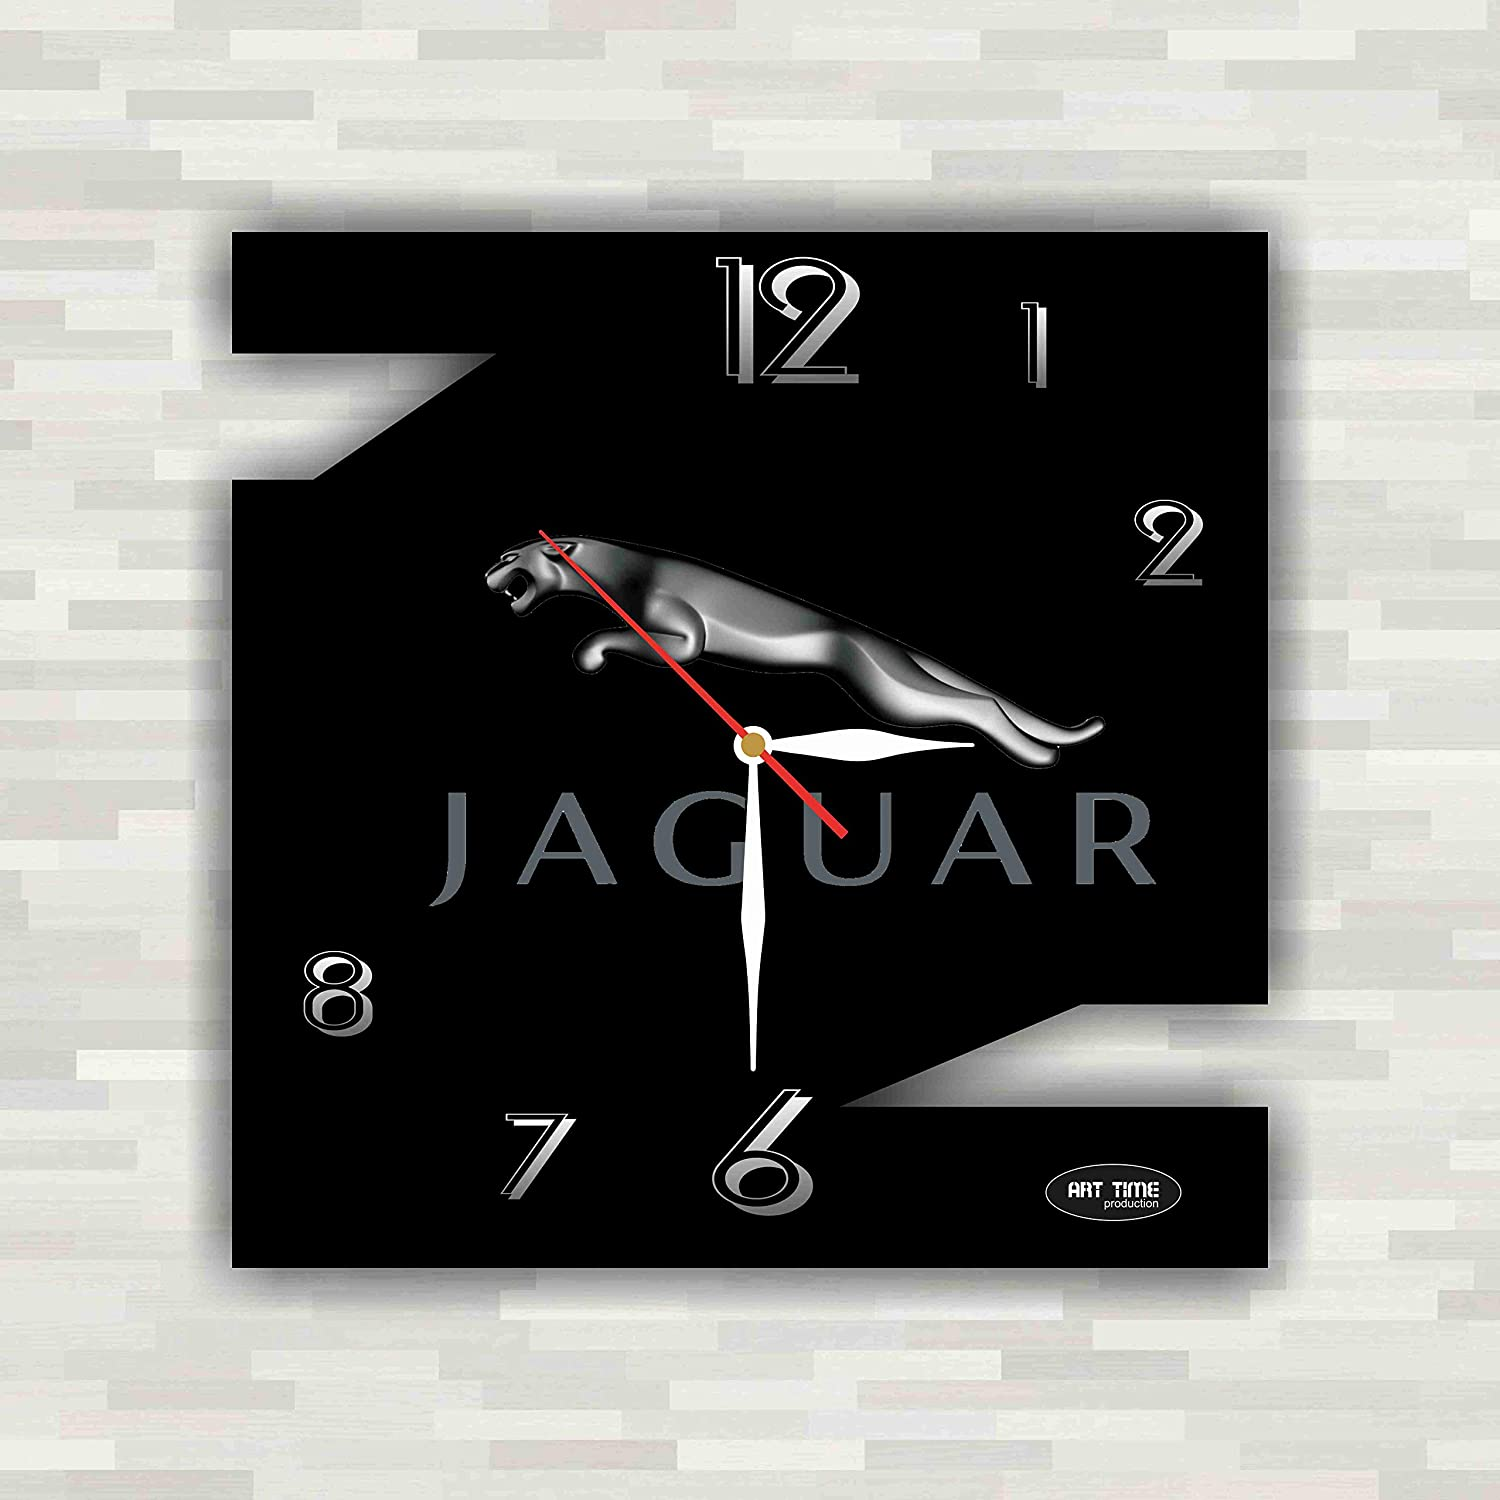 Amazon Com Jaguar 11 Exclusive Wall Clock Handmade Unique Clock For Home And Office Original Present For Every Occasion Home Kitchen